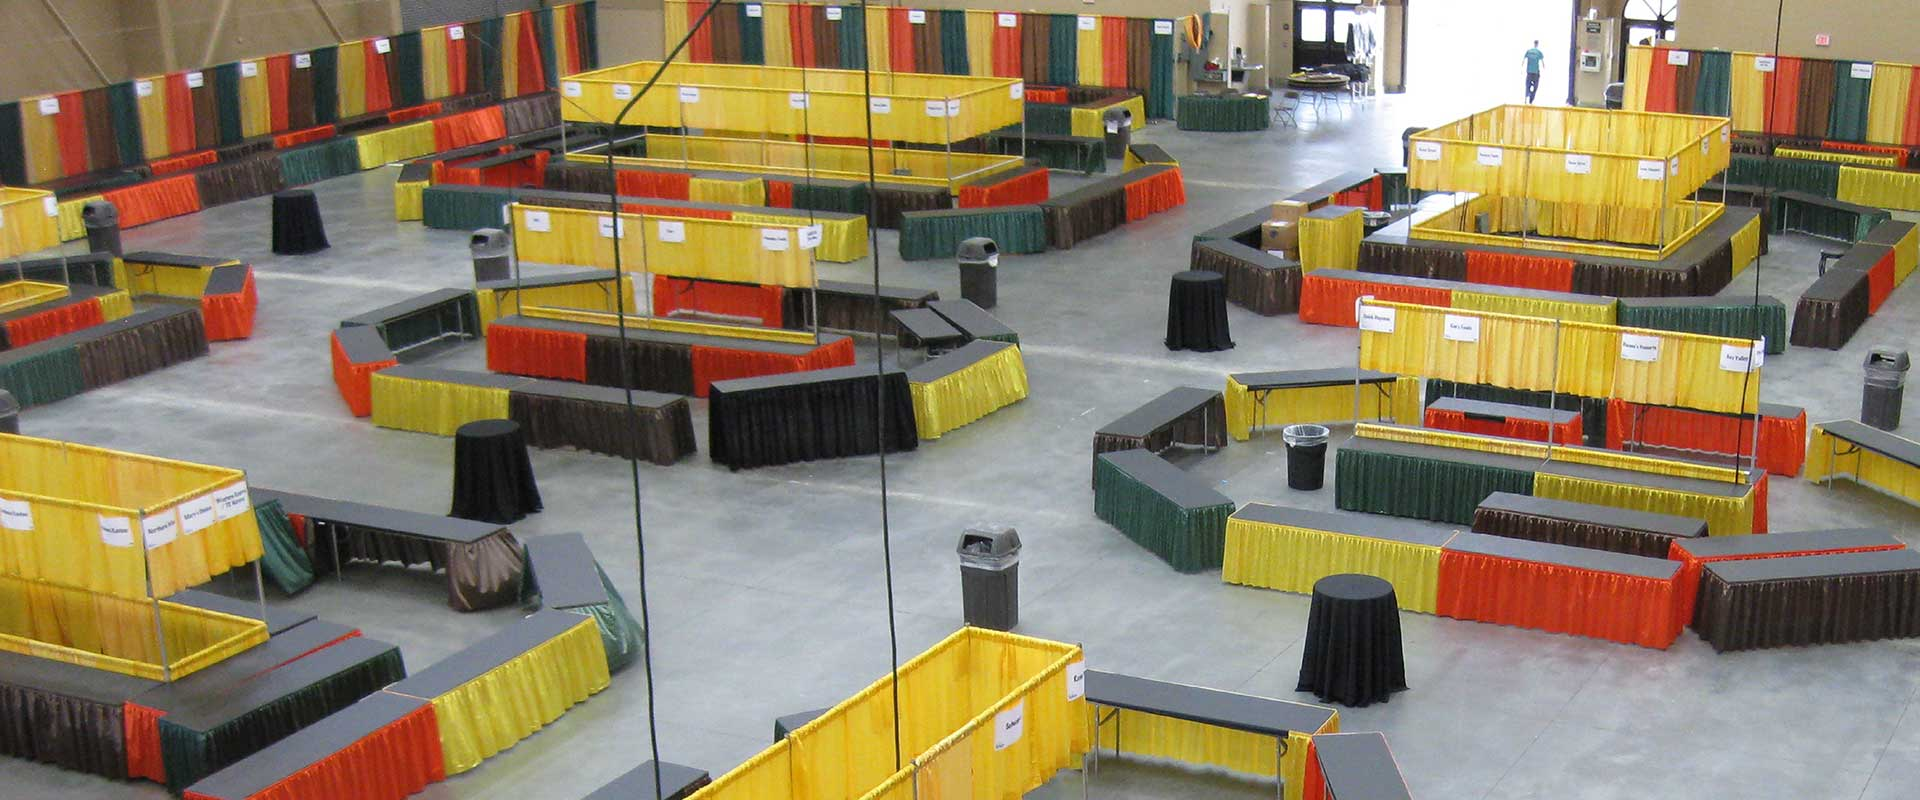 Convention Rentals in Fresno, Clovis, and the Central Valley